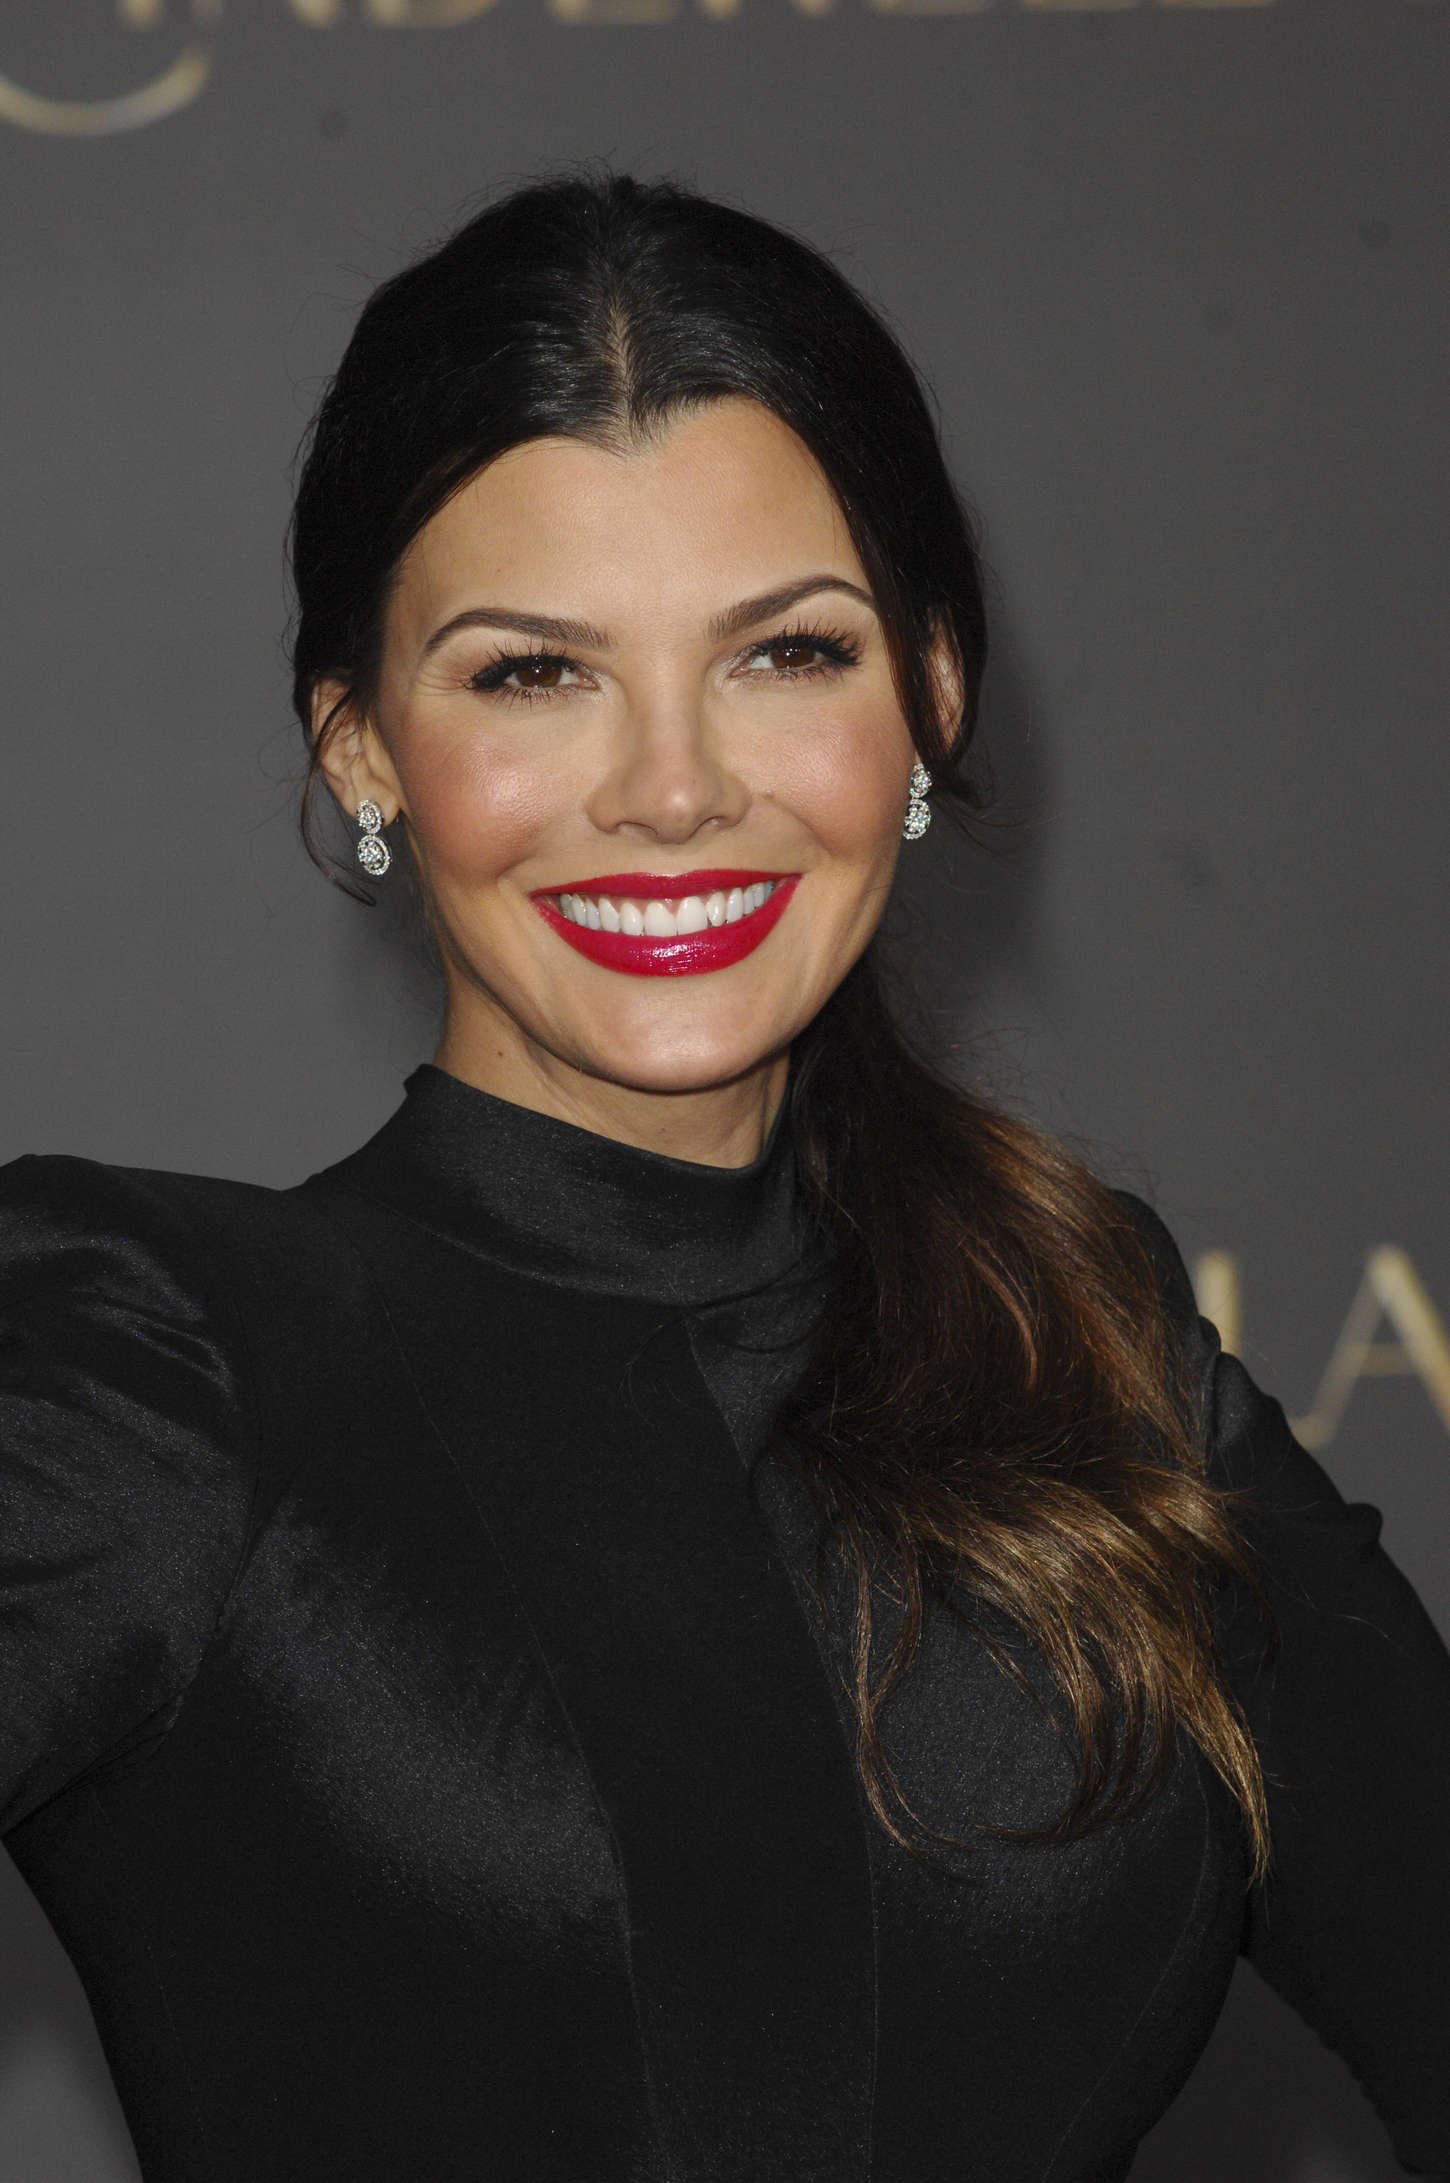 ali landry getty imagesali landry getty images, ali landry wikipedia, ali landry instagram, ali landry, ali landry doritos, ali landry wiki, ali landry images, ali landry 2014, ali landry photo gallery, ali landry net worth, ali landry family, ali landry husband, ali landry mario lopez, ali landry doritos commercial, ali landry imdb